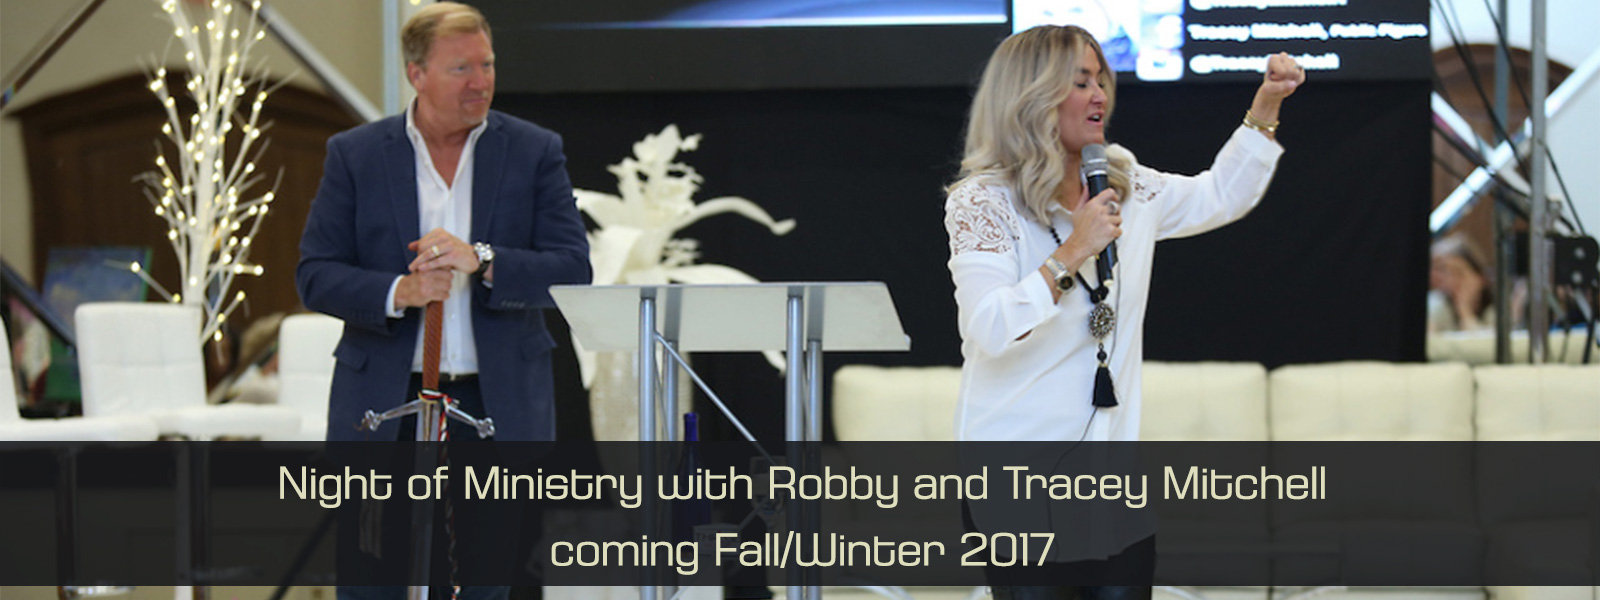 Night of Ministry with Robby and Tracey Mitchell